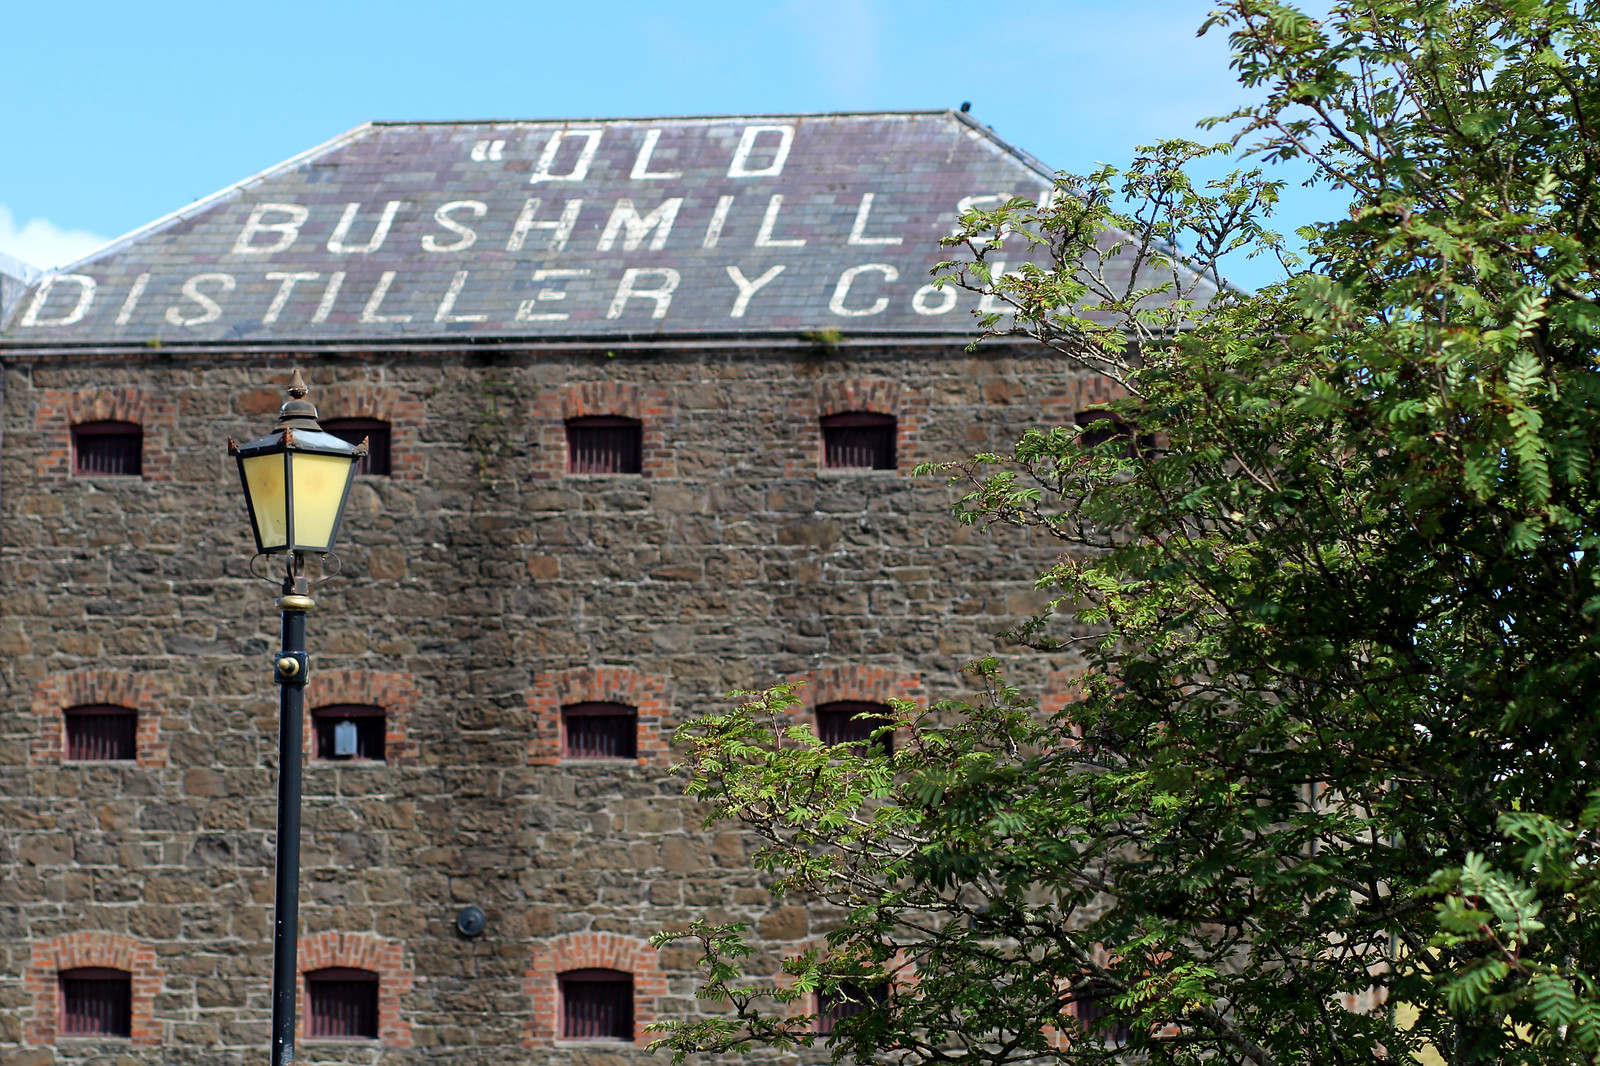 Old Bushmills Distillery Northern Ireland travel blogger UK